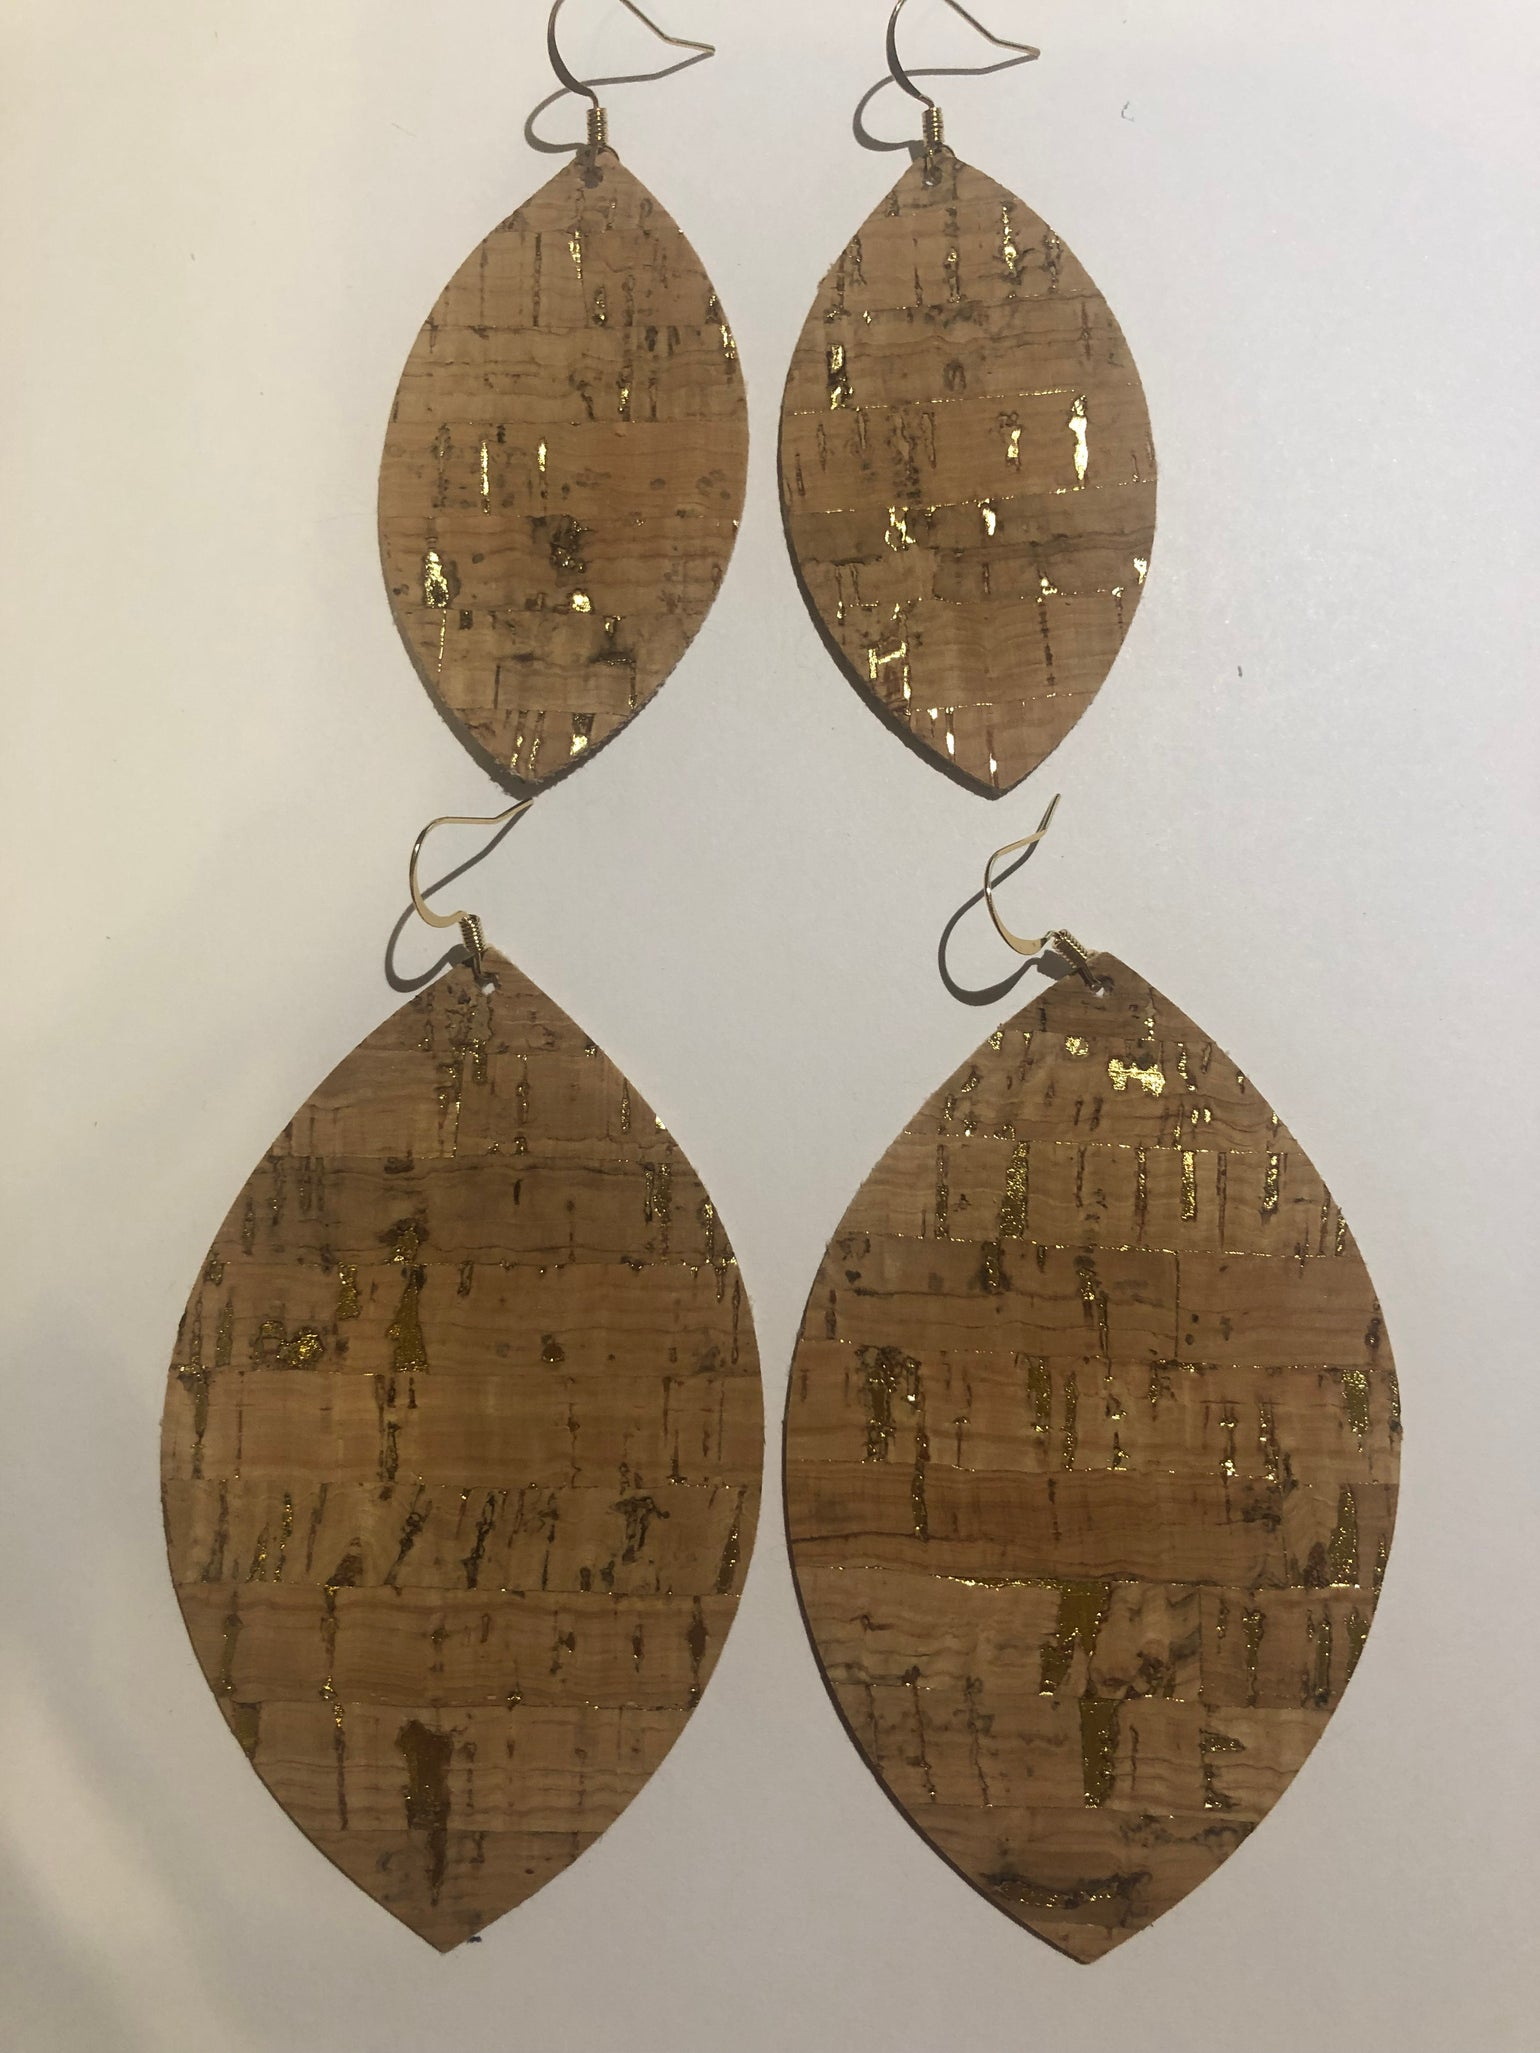 Image of Natural Cork Earrings with Gold - Large and Small Leaf